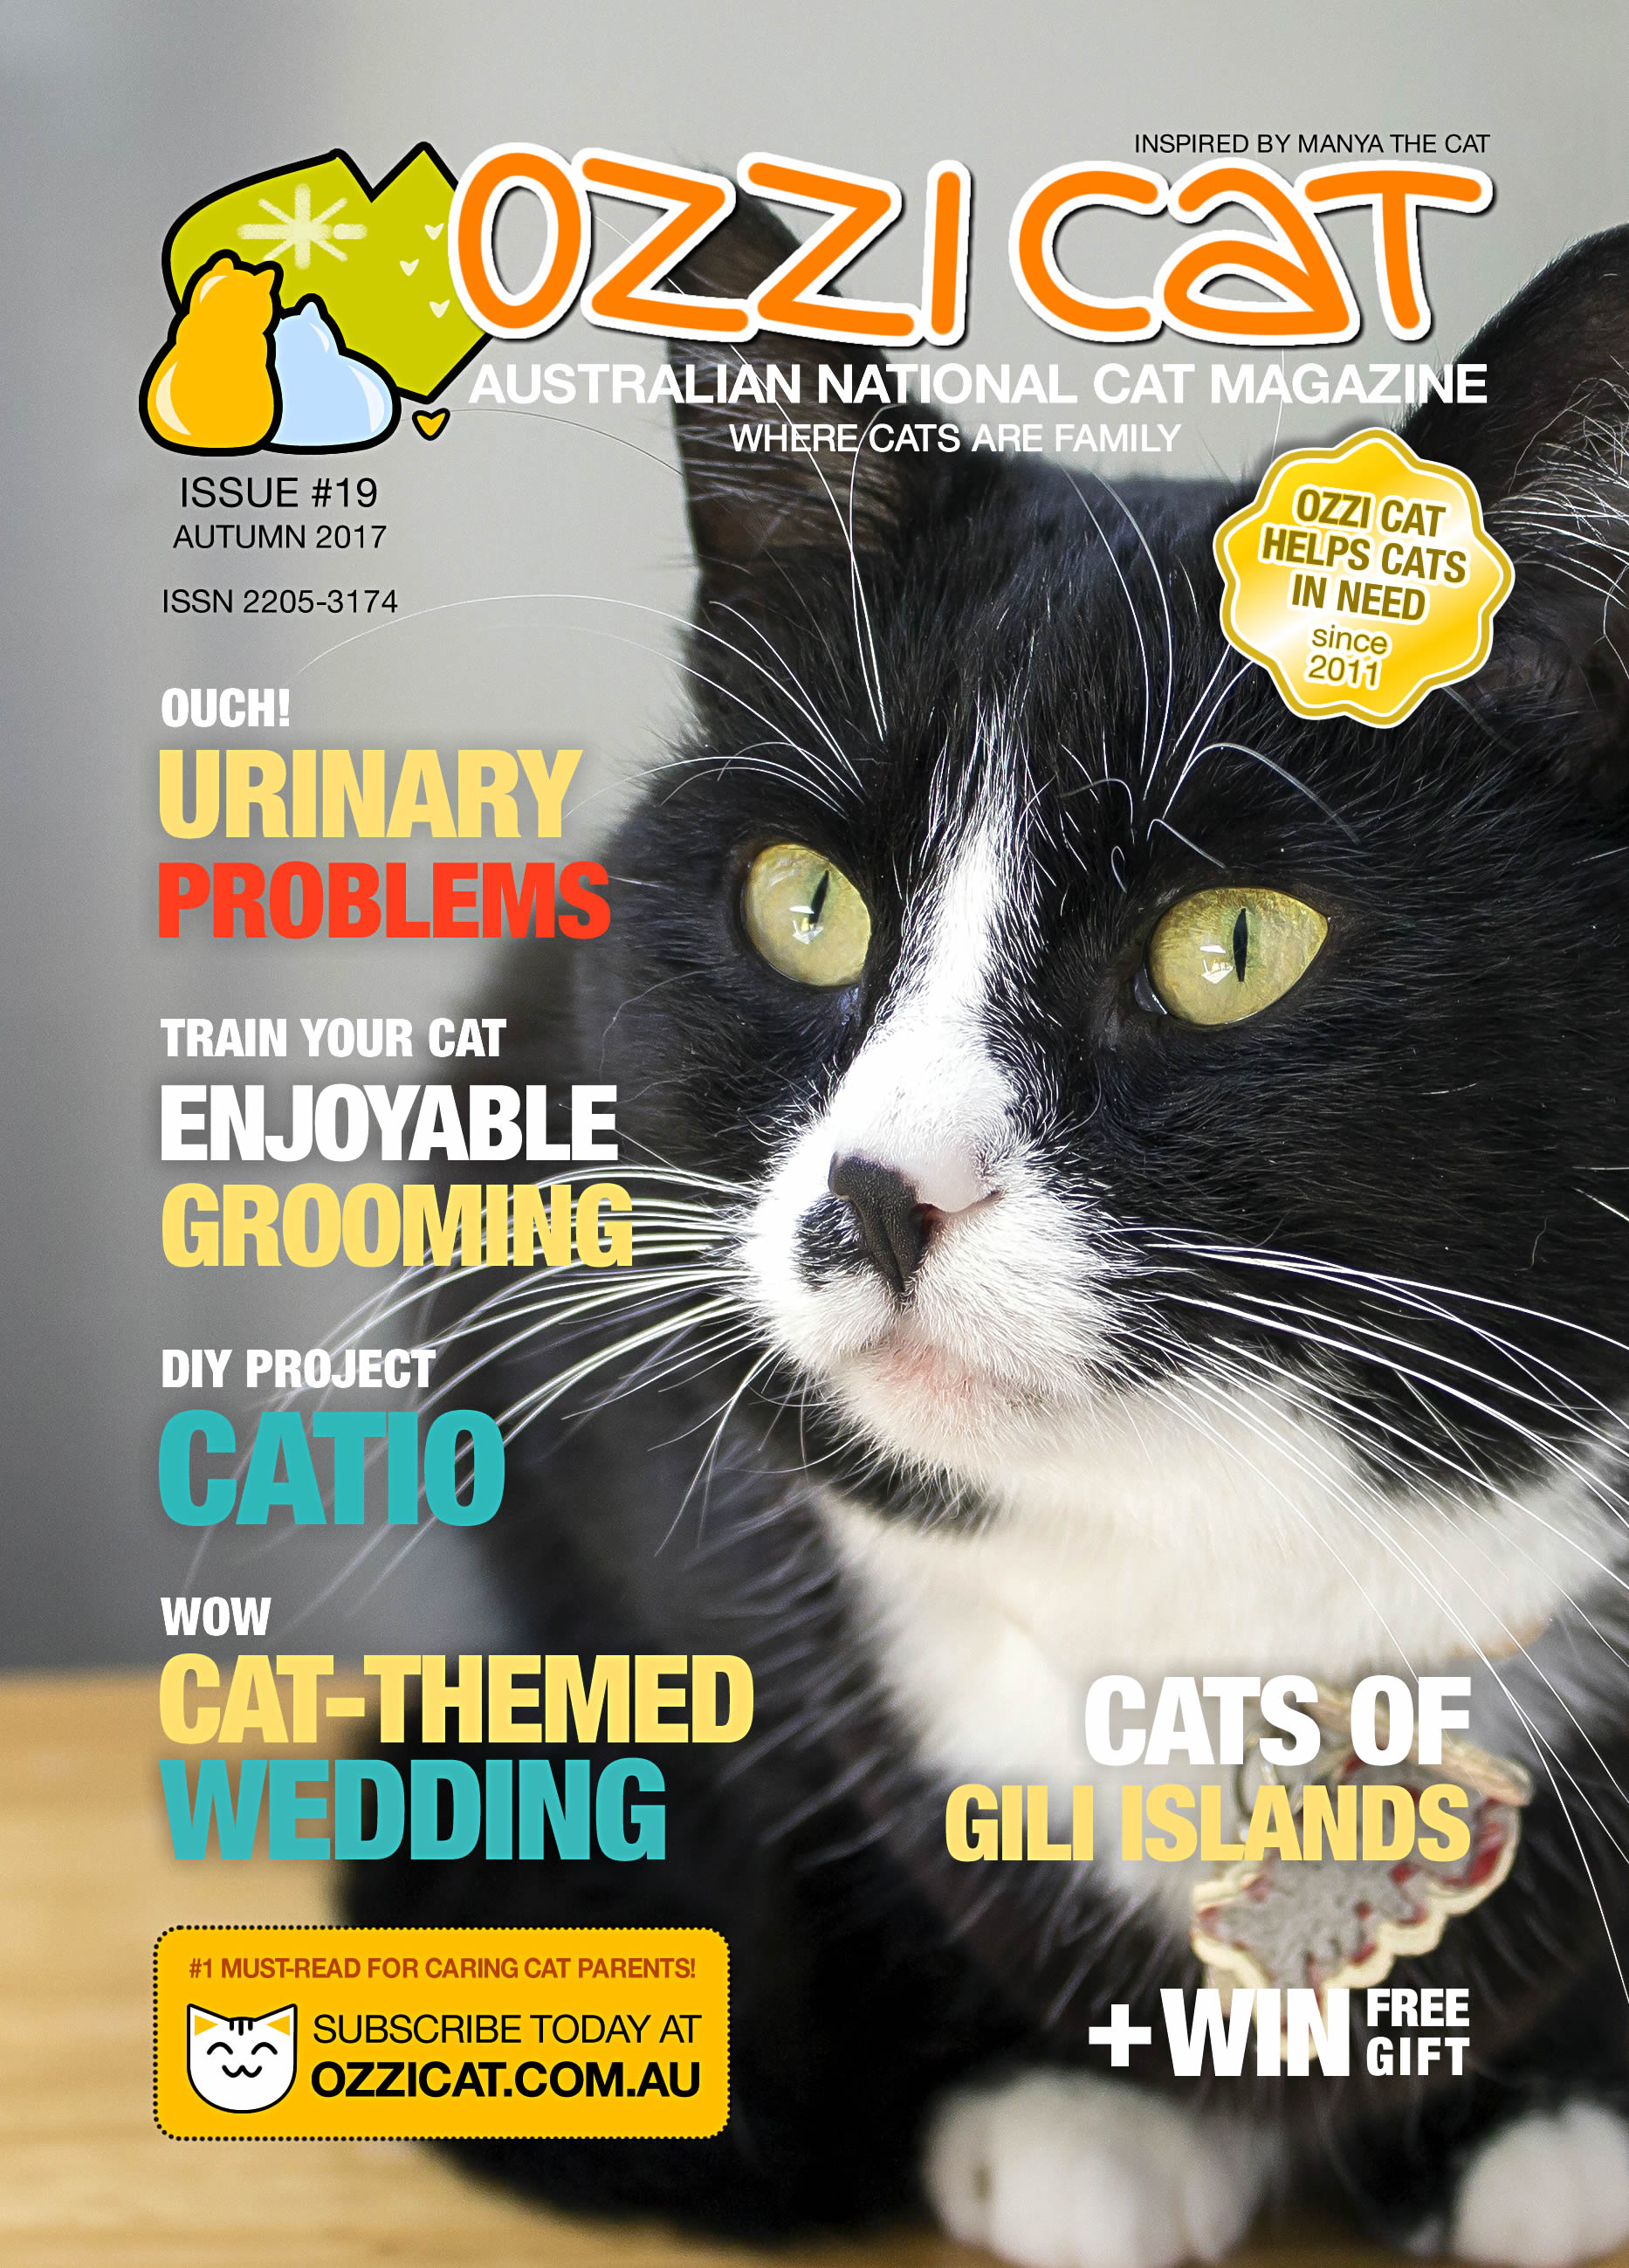 Ozzi Cat - Australian National Cat Magazine - Issue 19 - AUTUMN 2017